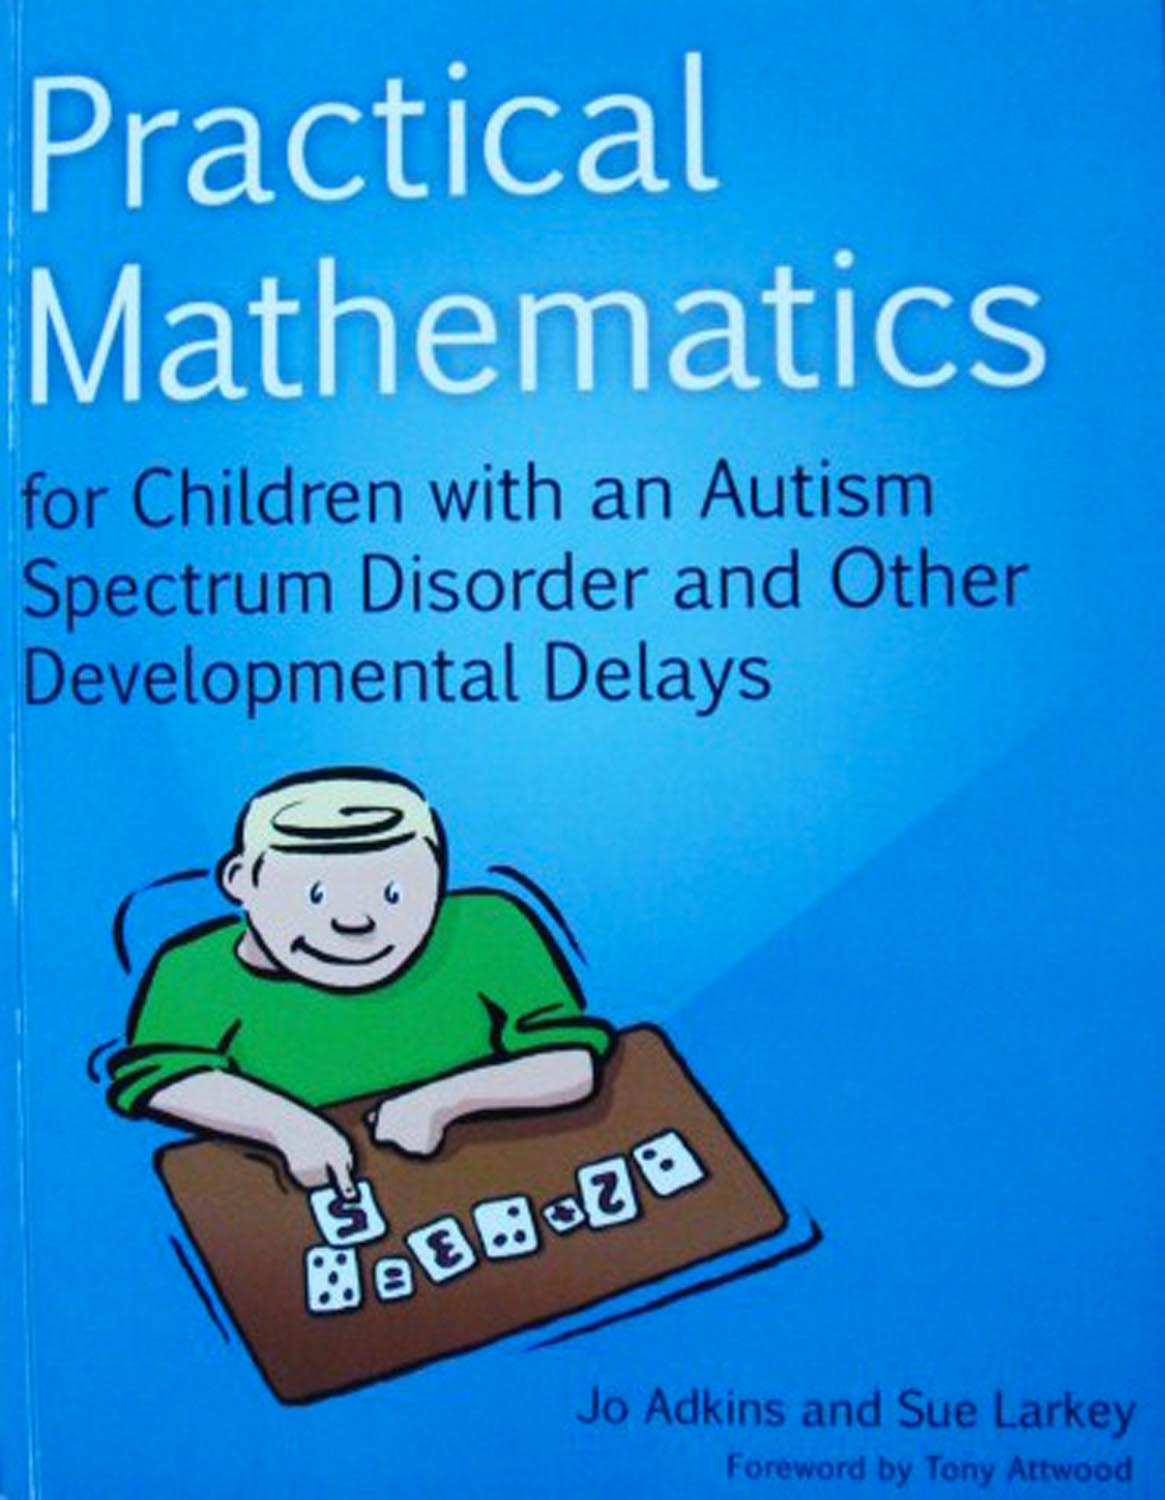 Practical Mathematics for Children with an Autism Spectrum Disorder and Other Developmental Delays Image